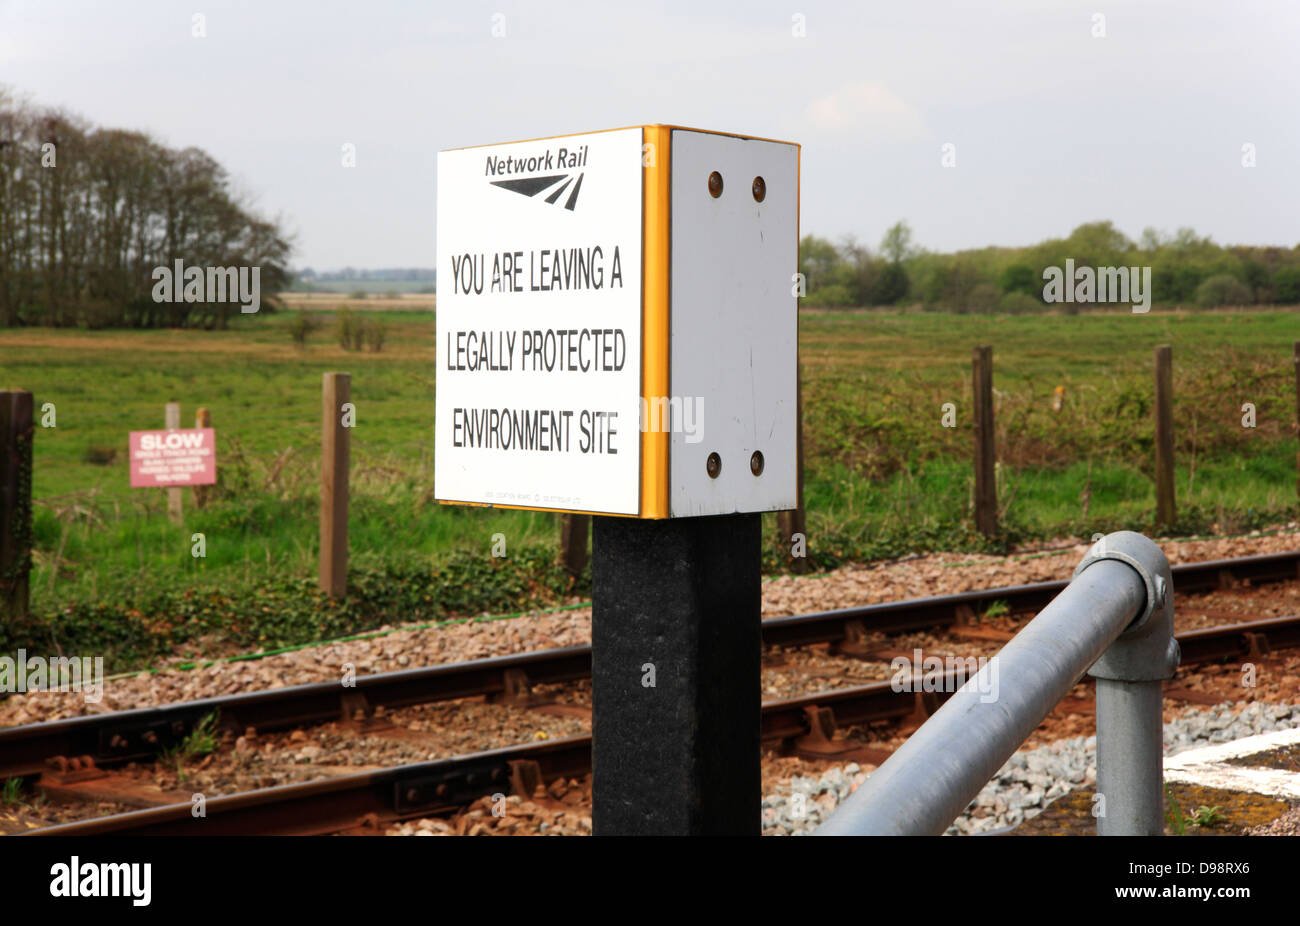 A notice advising of leaving a legally protected environment site at Buckenham Station, Norfolk, england, United - Stock Image